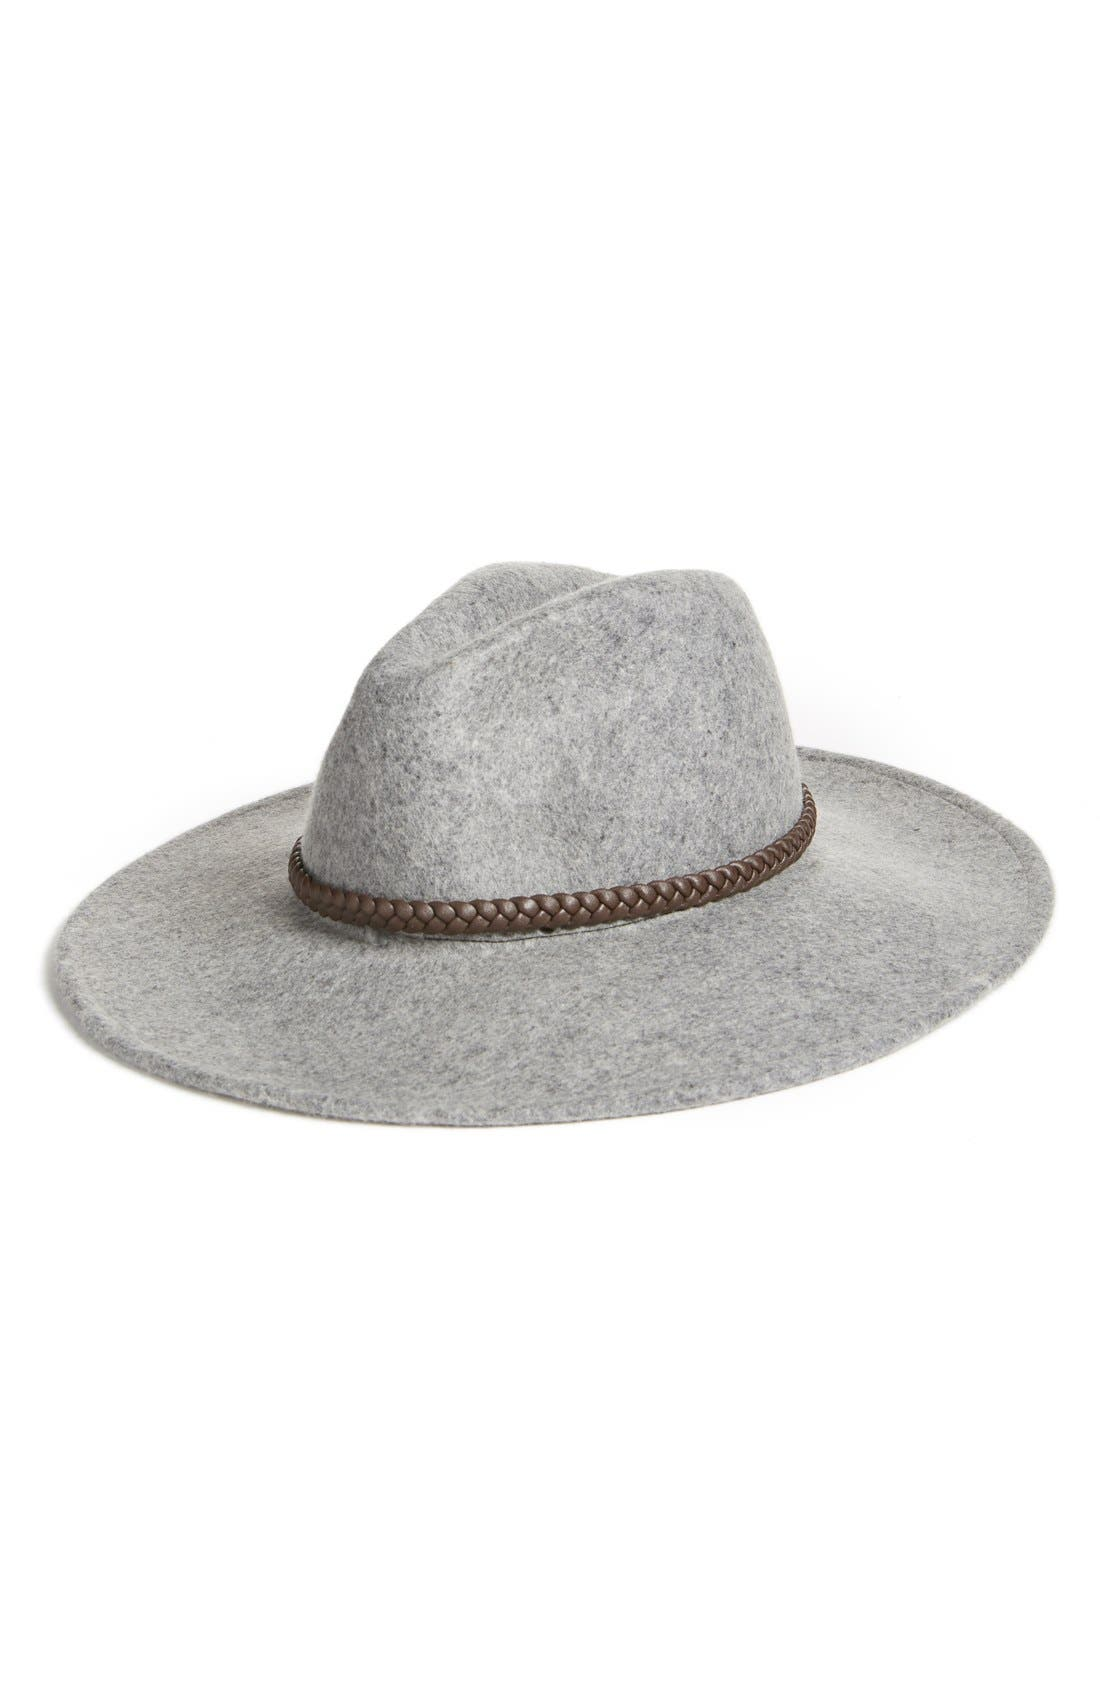 Main Image - Billabong Wool Hat with Braided Faux Leather Trim